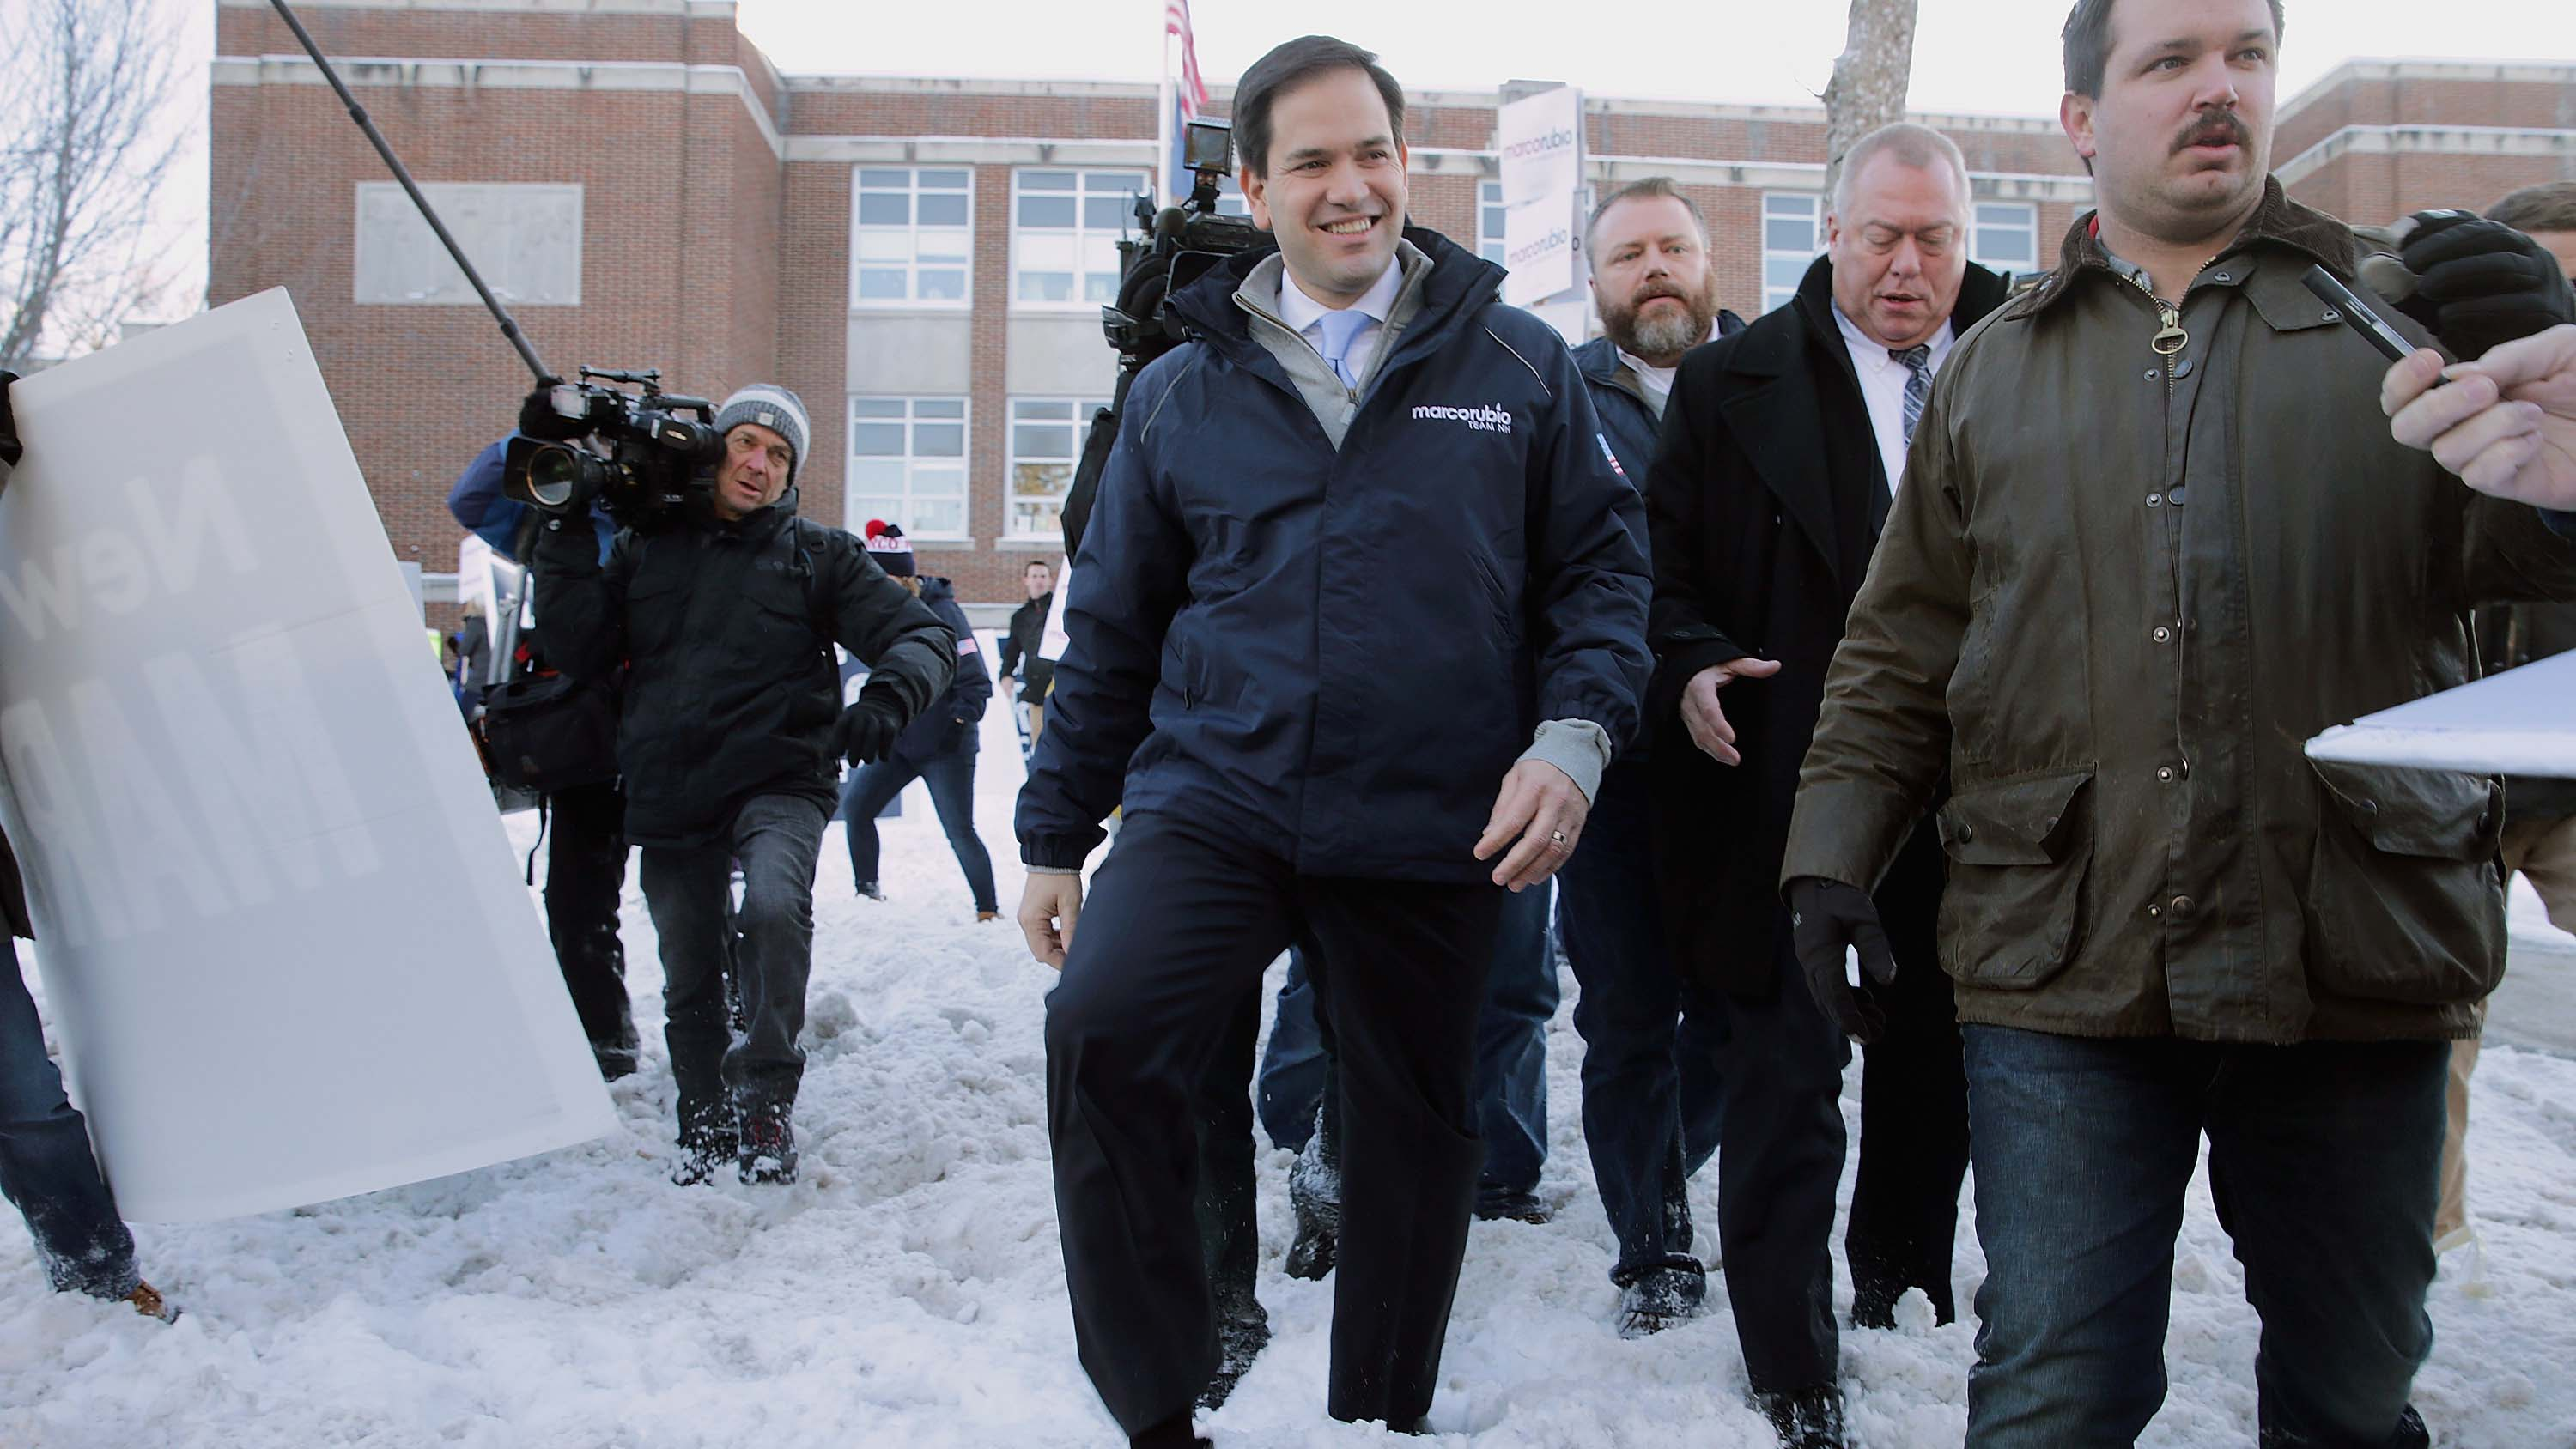 Rubio walks through the snow after stopping to thank supporters outside the polling place at Webster School in Manchester, New Hampshire.